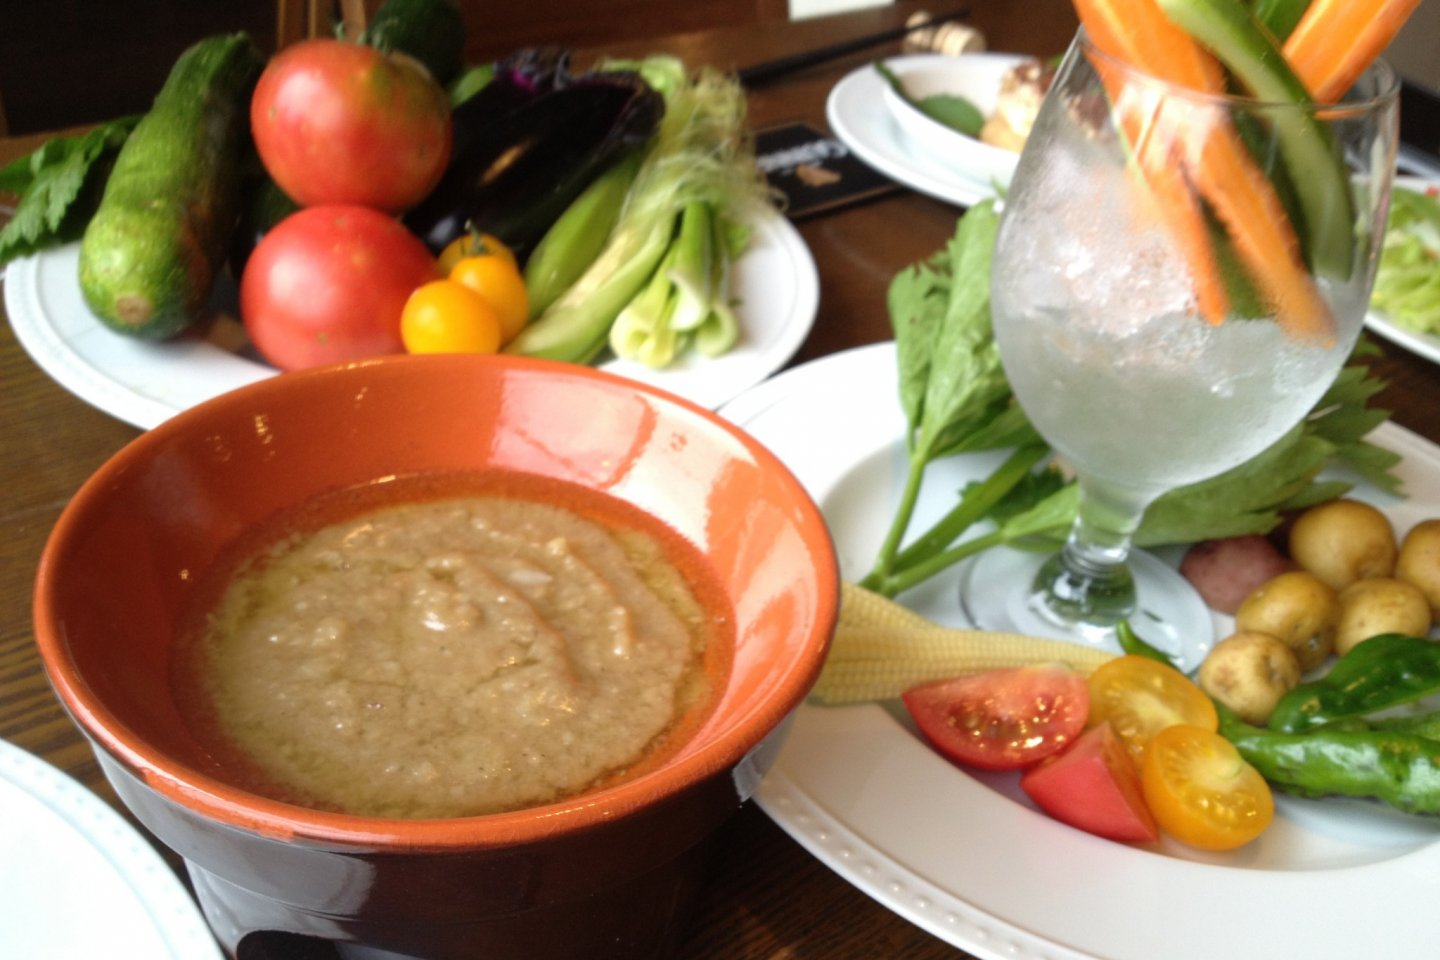 Seasonal vegetables are blended together to make this exquisite bagna cauda (dip made from garlic, anchovies and oil).